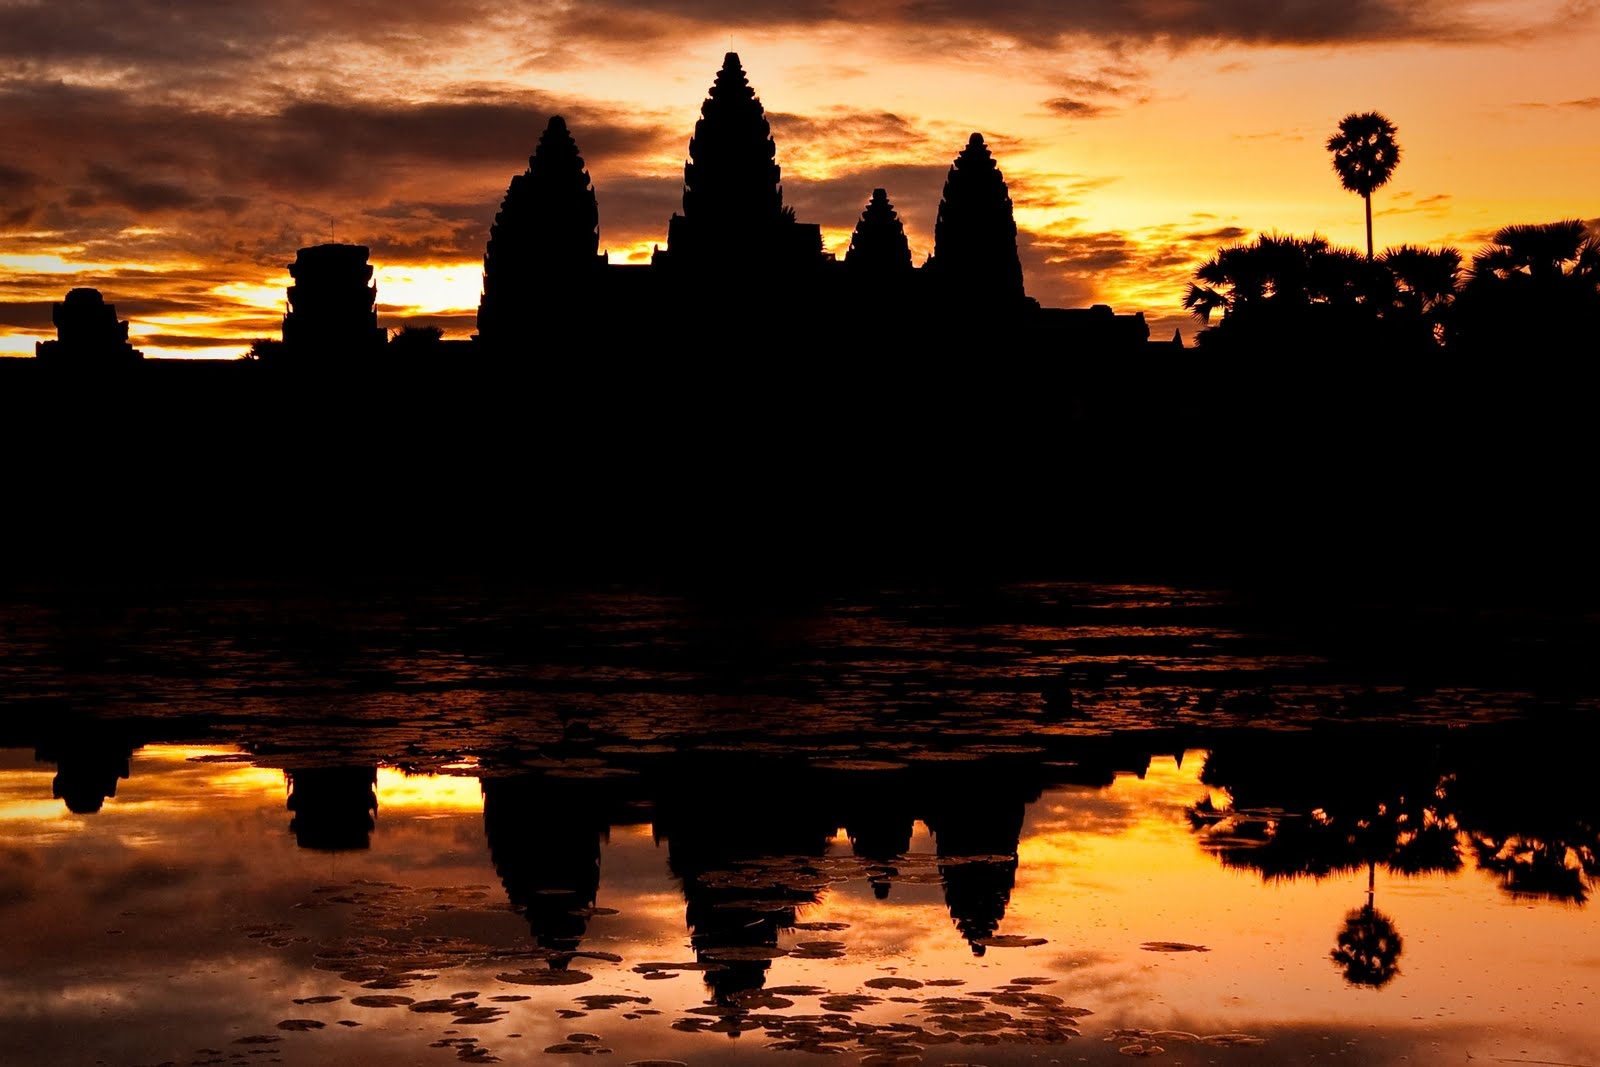 http://4.bp.blogspot.com/-1tkKx5GBz4k/Tn84p2SbezI/AAAAAAAAAdY/f3ml_1tSKK8/s1600/angkor-wat-background-11-723122.jpg